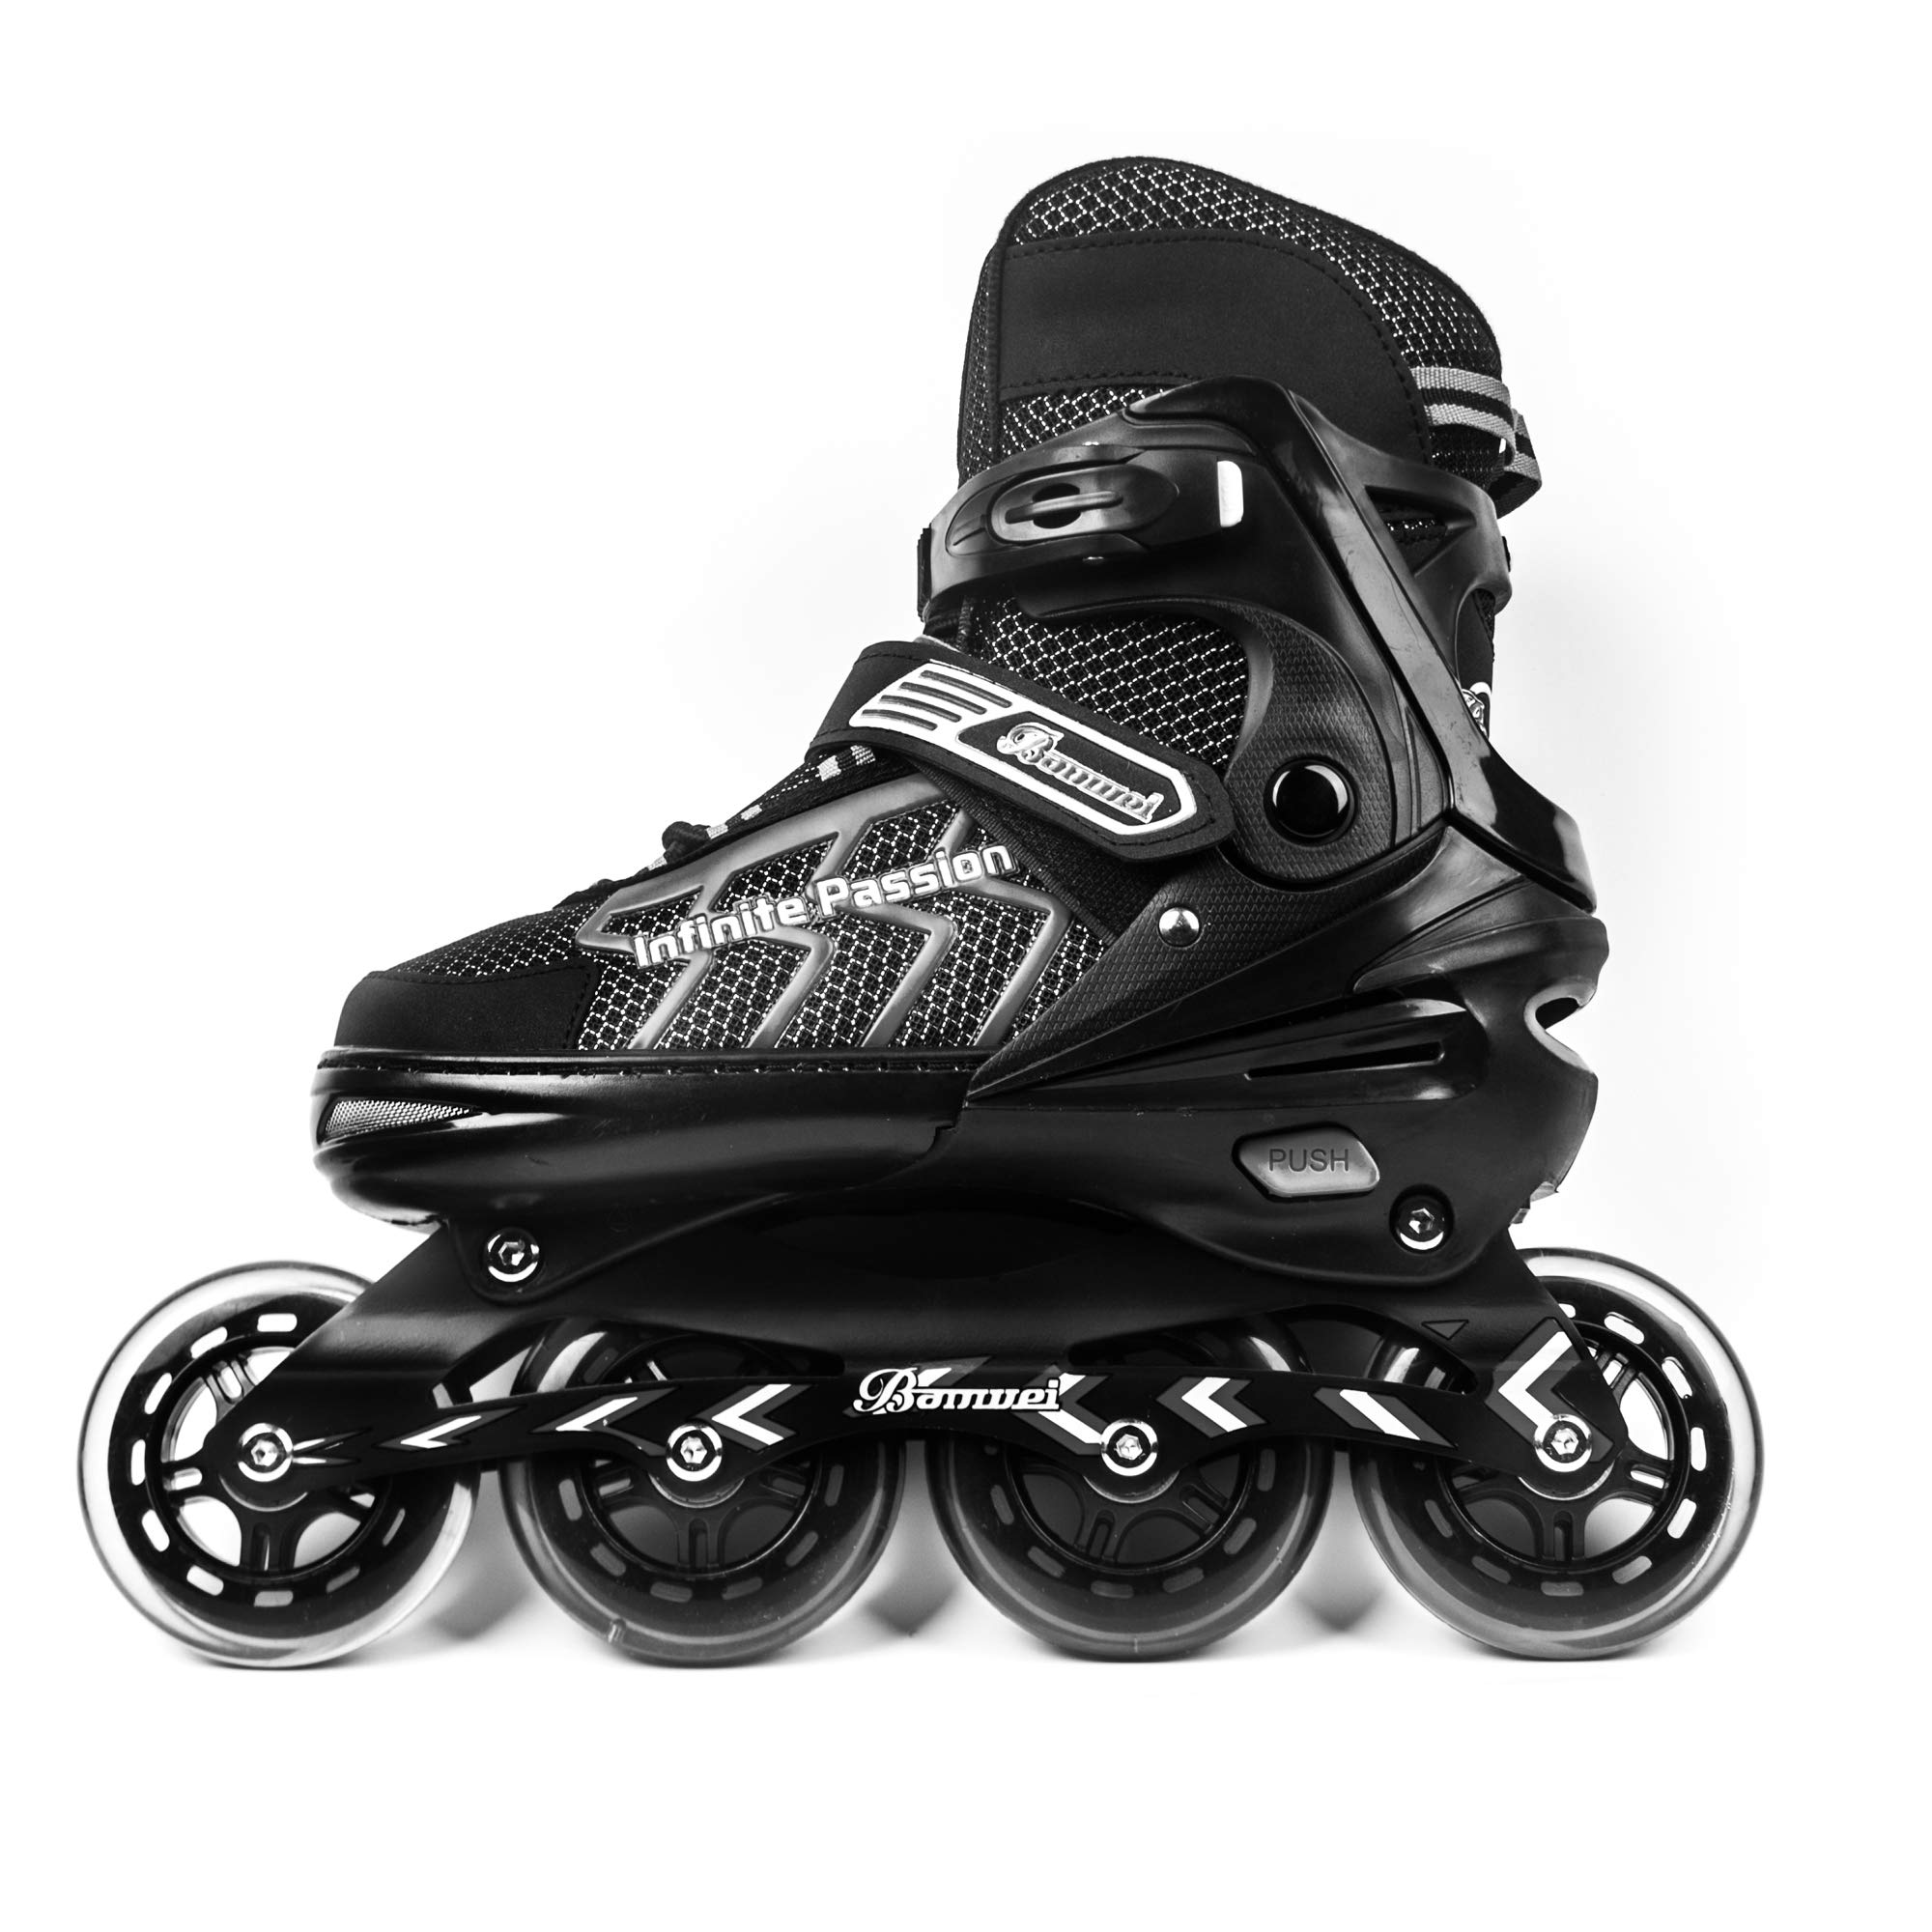 MammyGol Adjustable Inline Skates for Adults and Teen, Safe and Durable Roller Skates with Giant Wheels,High Performance Skates for Girls and Boys 6-9 US